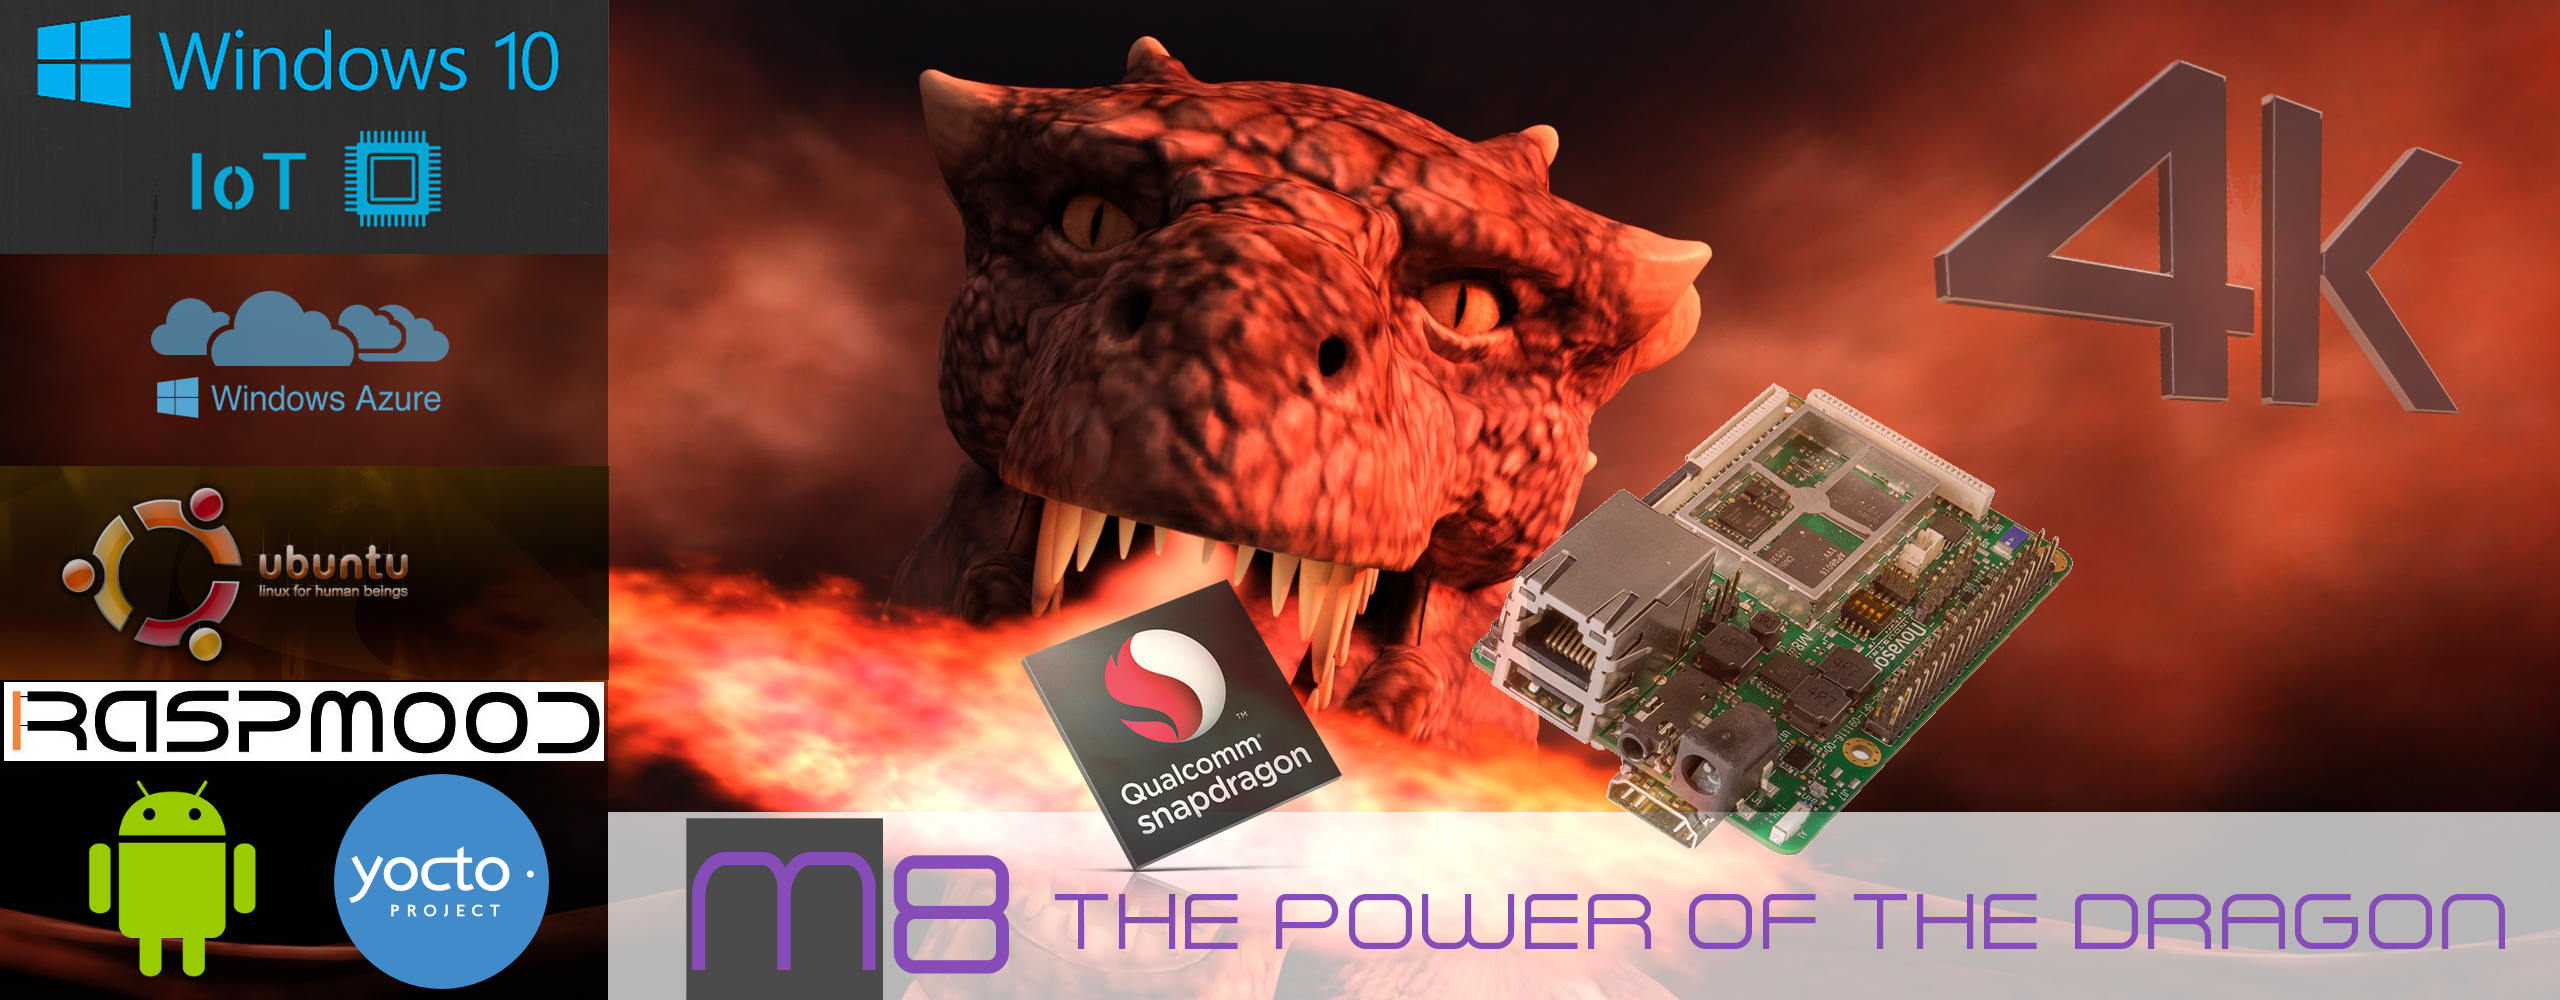 NOVASOM M8 - THE POWER OF THE DRAGON